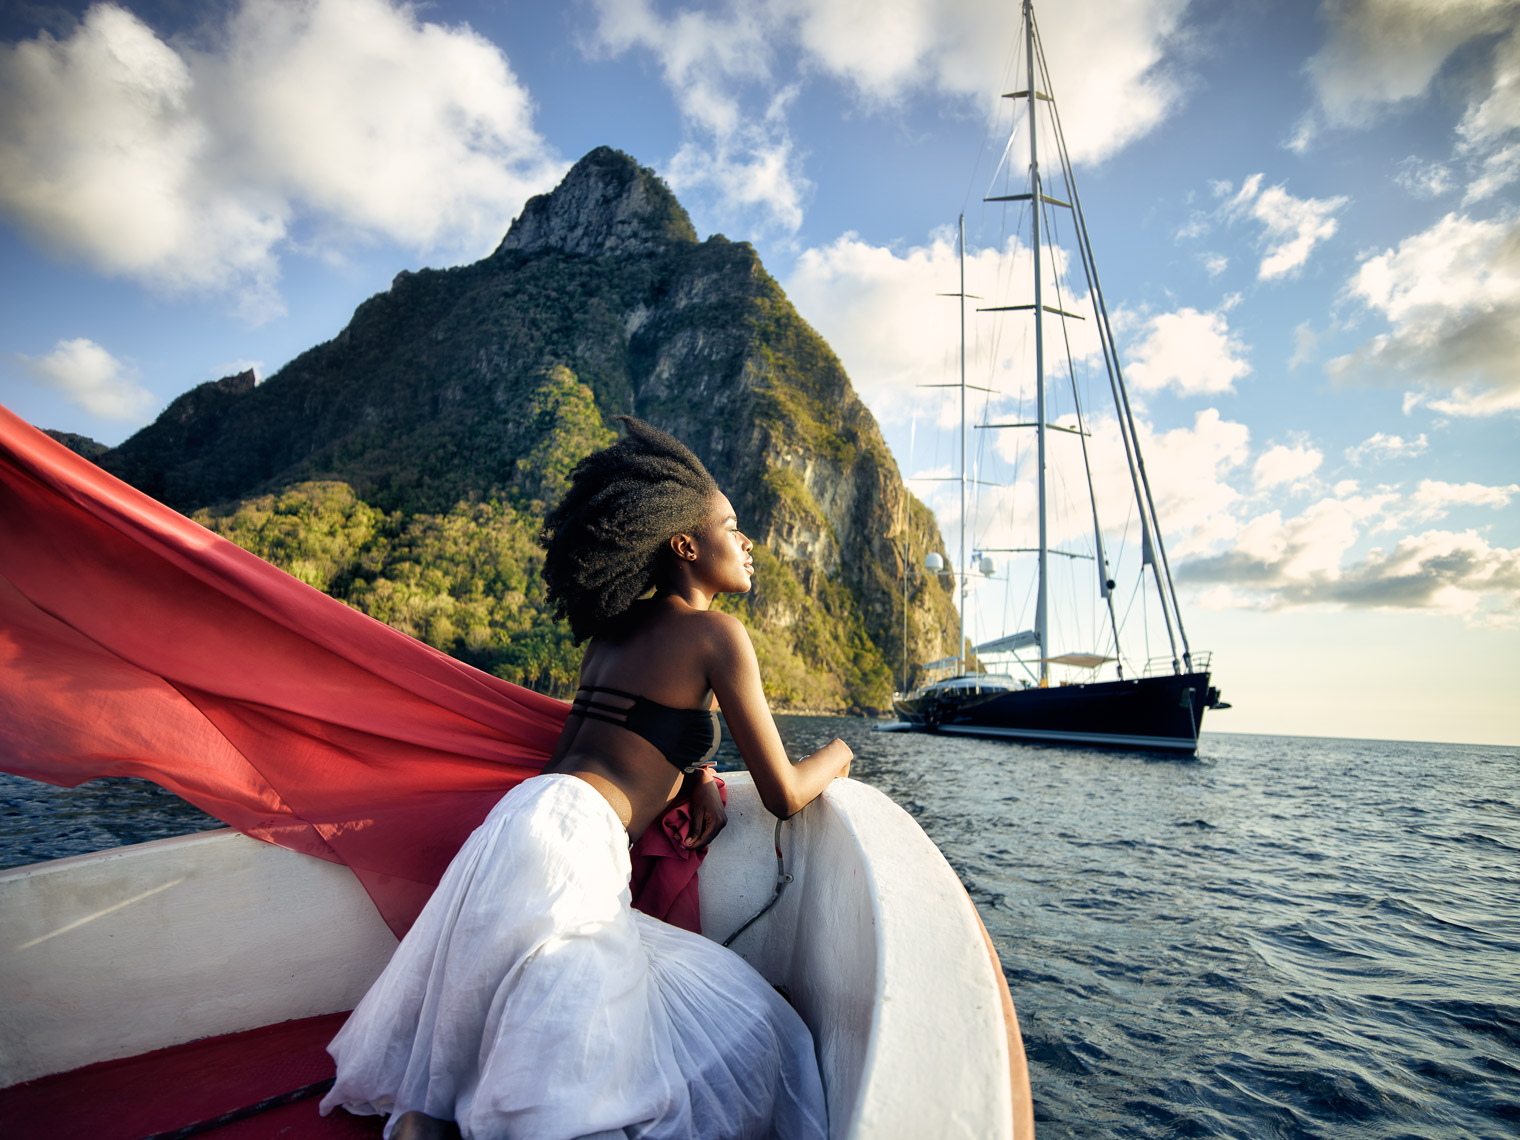 A young woman approaches a luxury yacht on St Lucia